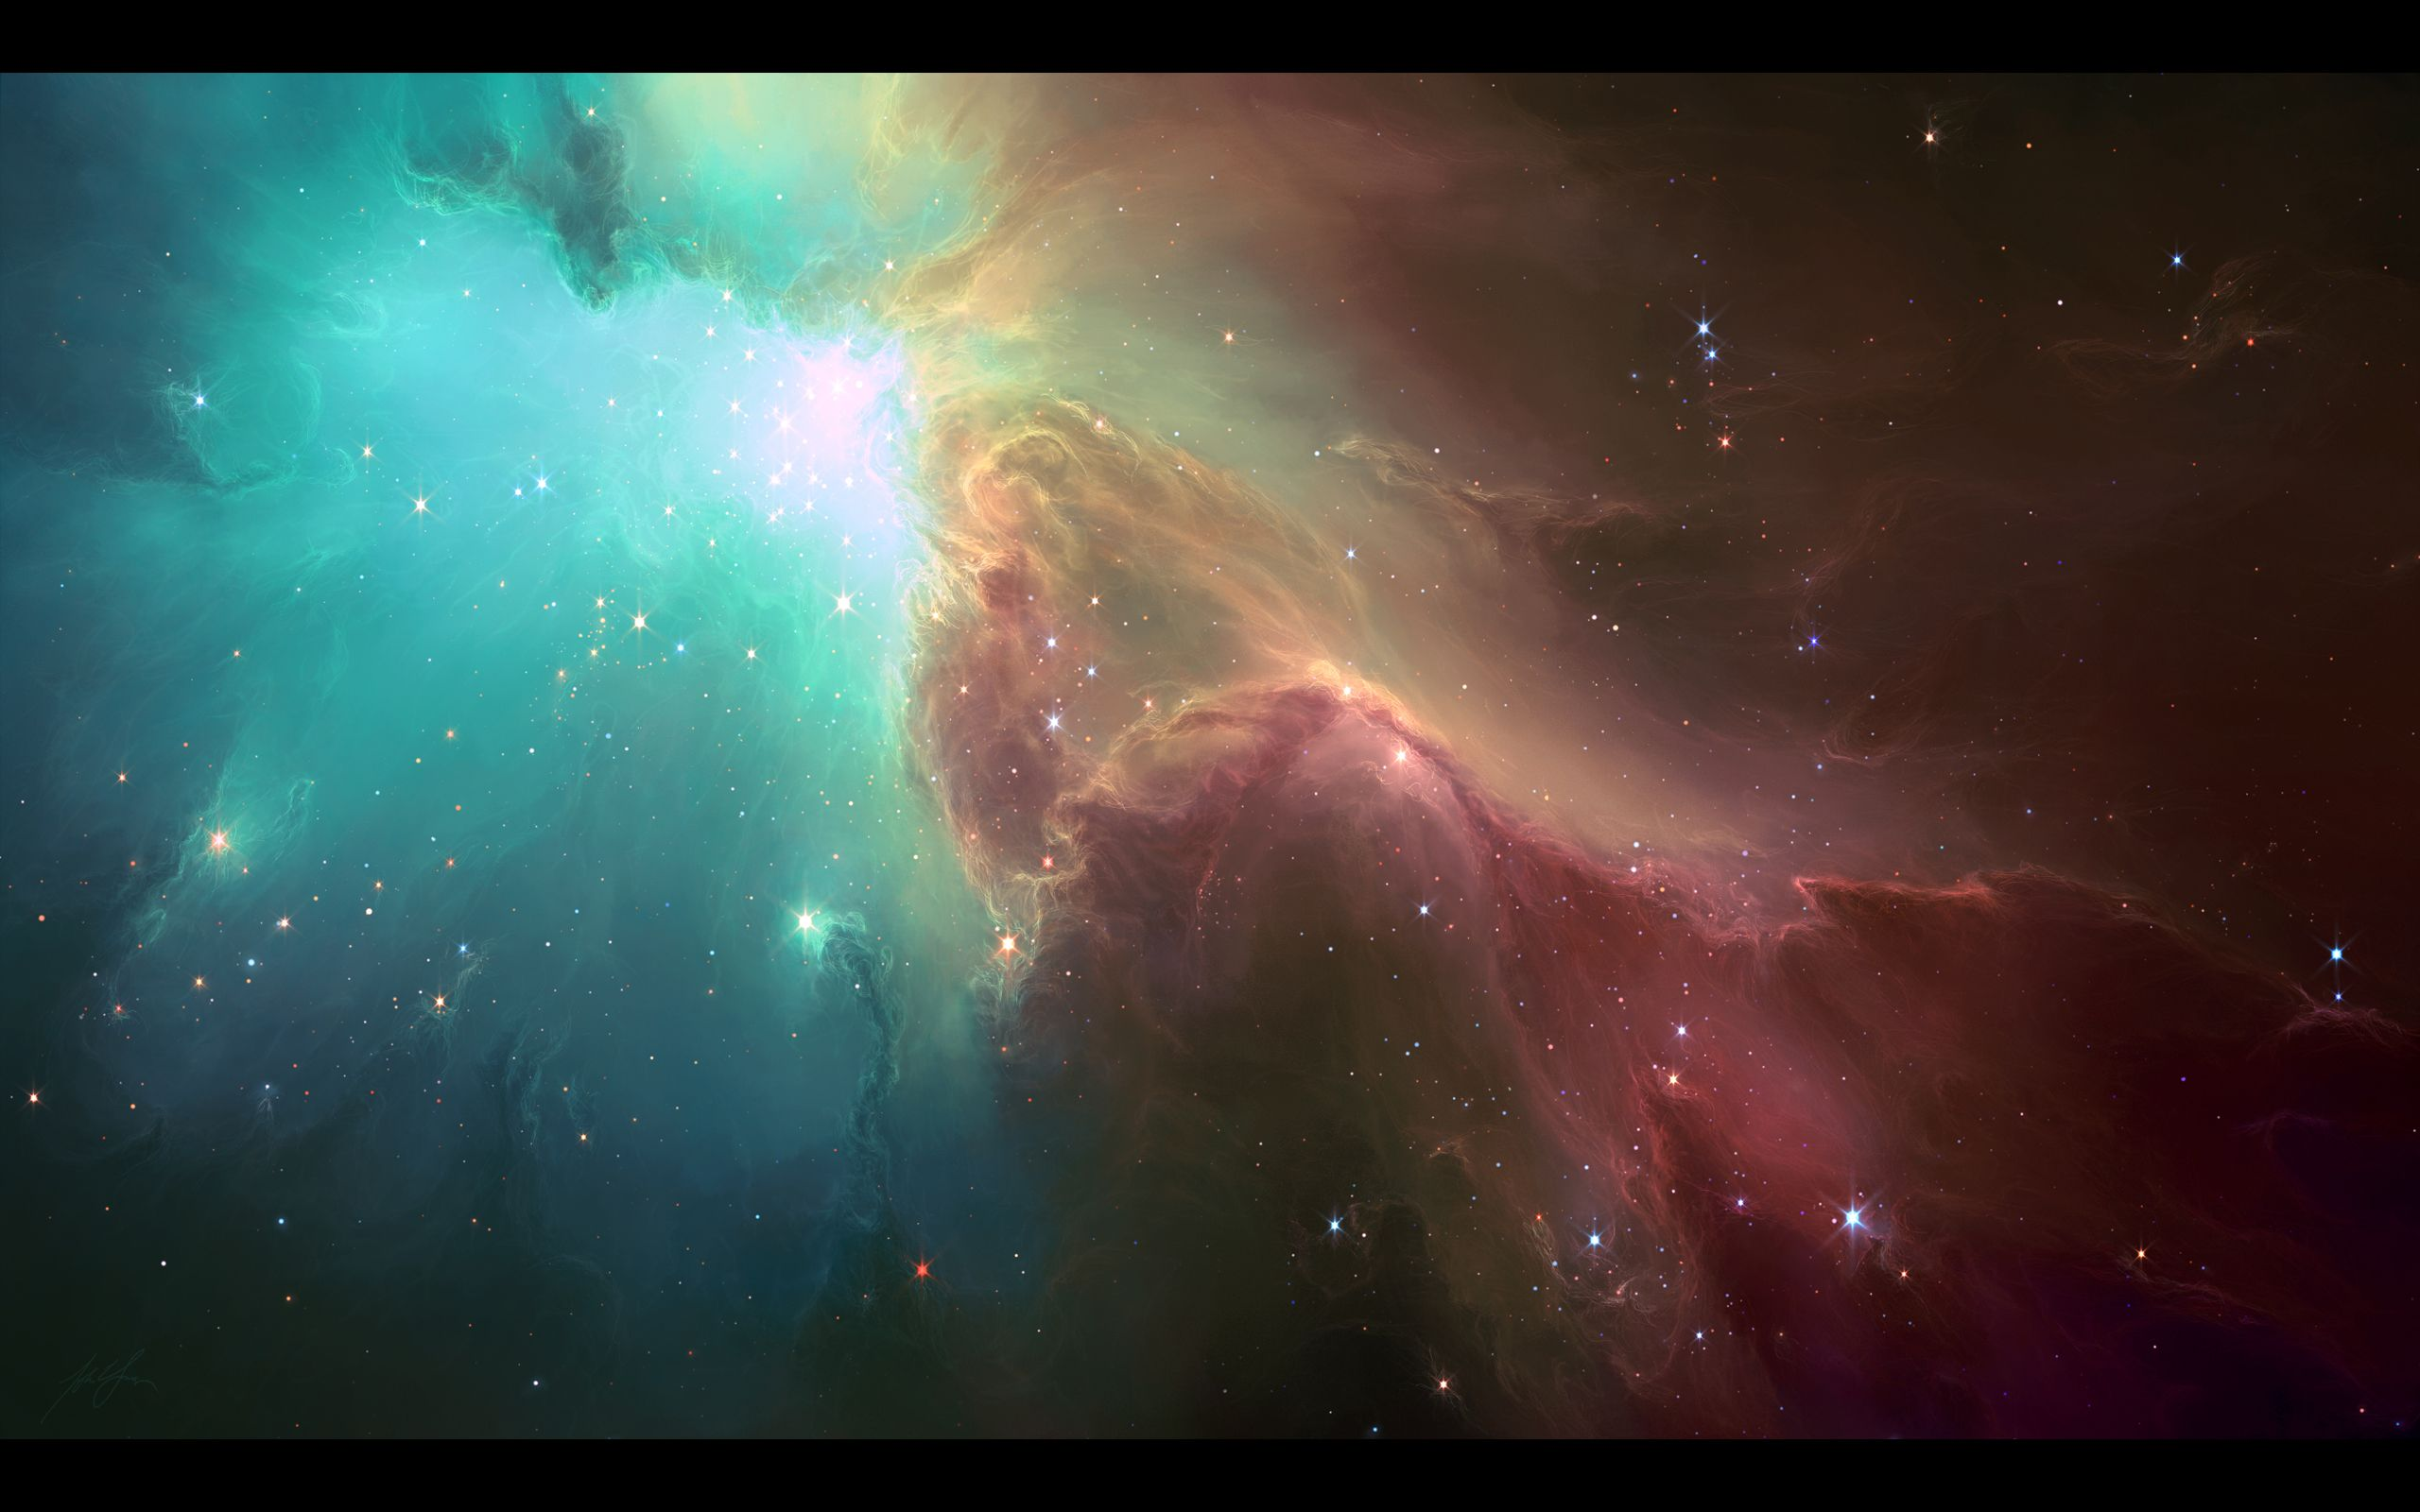 17 Best images about Cosmos on Pinterest   Galaxies, Milky way and ...